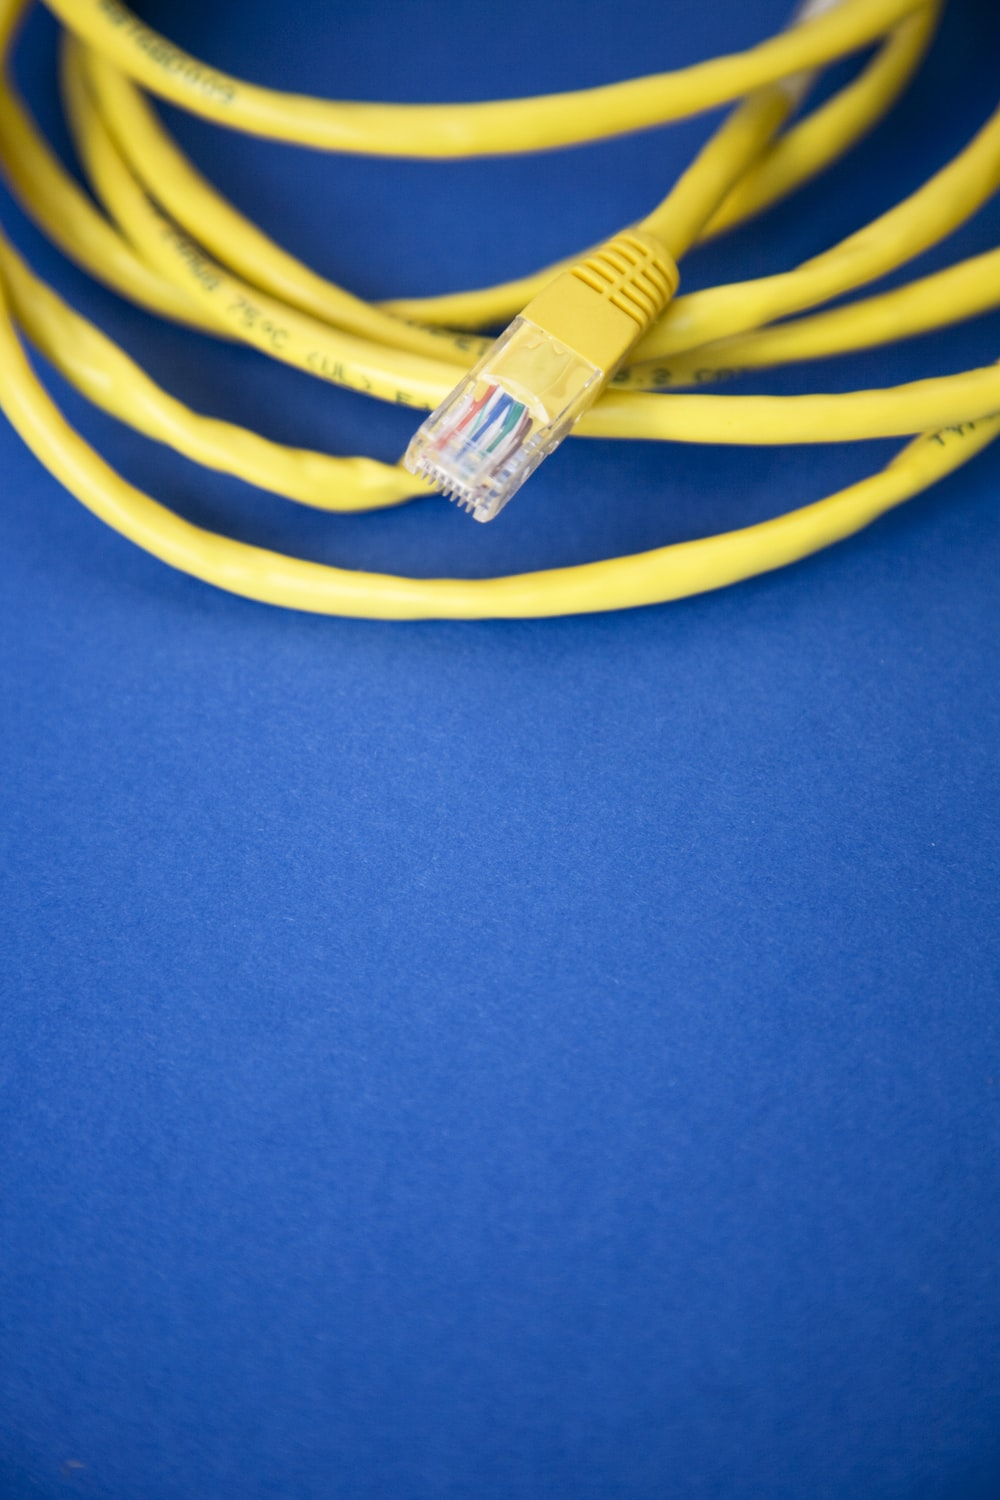 27 Cable Pictures Download Free Images On Unsplash